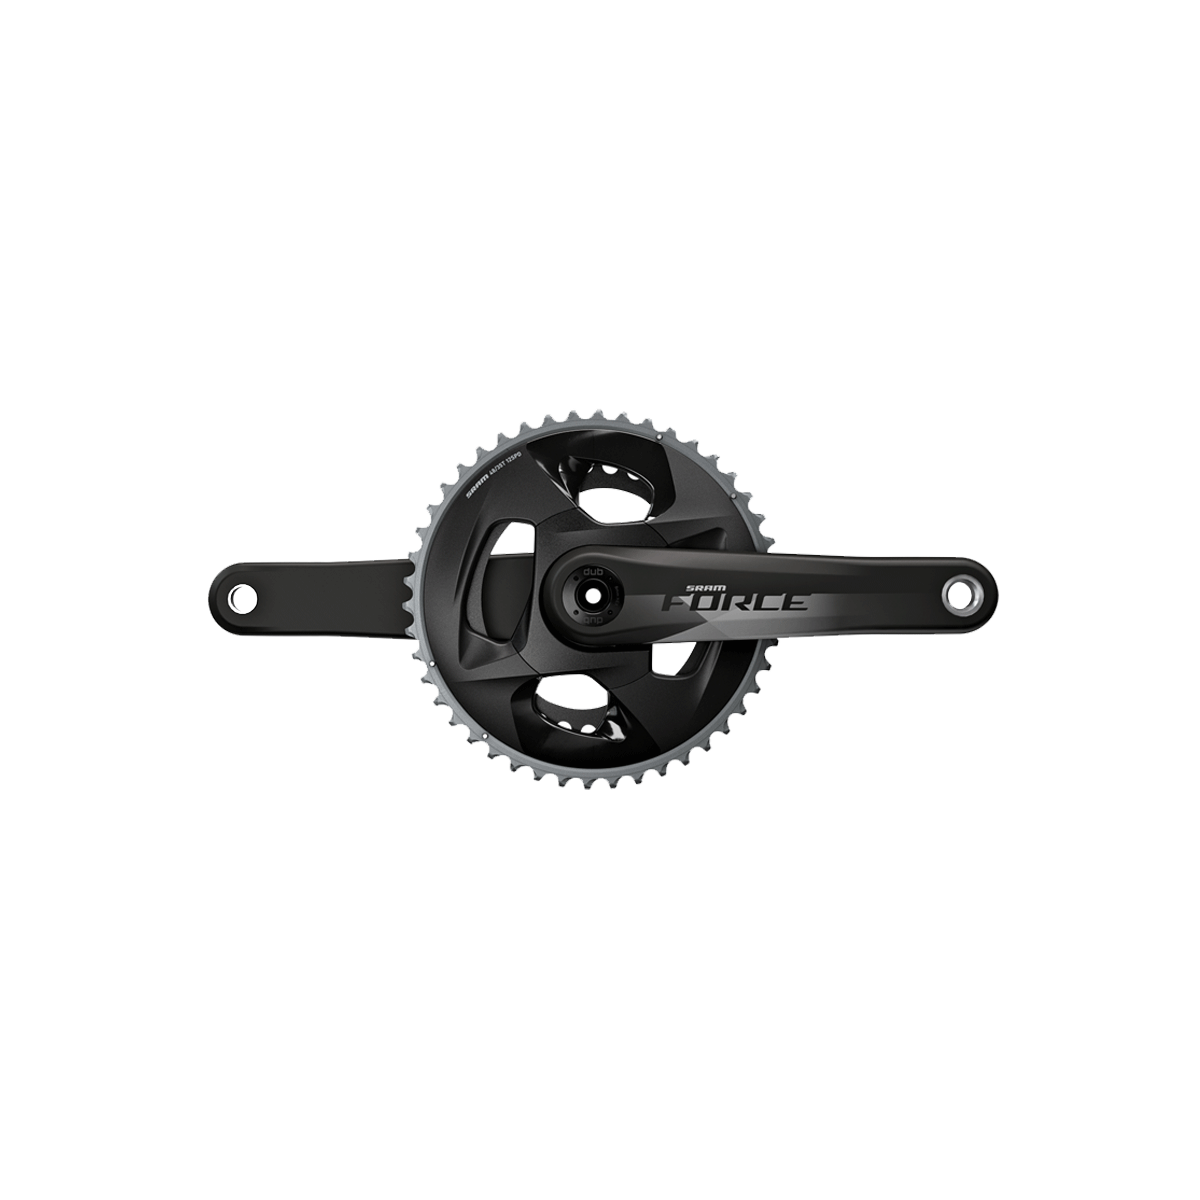 SRAM Components > Brakes & Chainsets 170mm / 46/33 SRAM FORCE DOUBLE D1 DUB CRANKSET